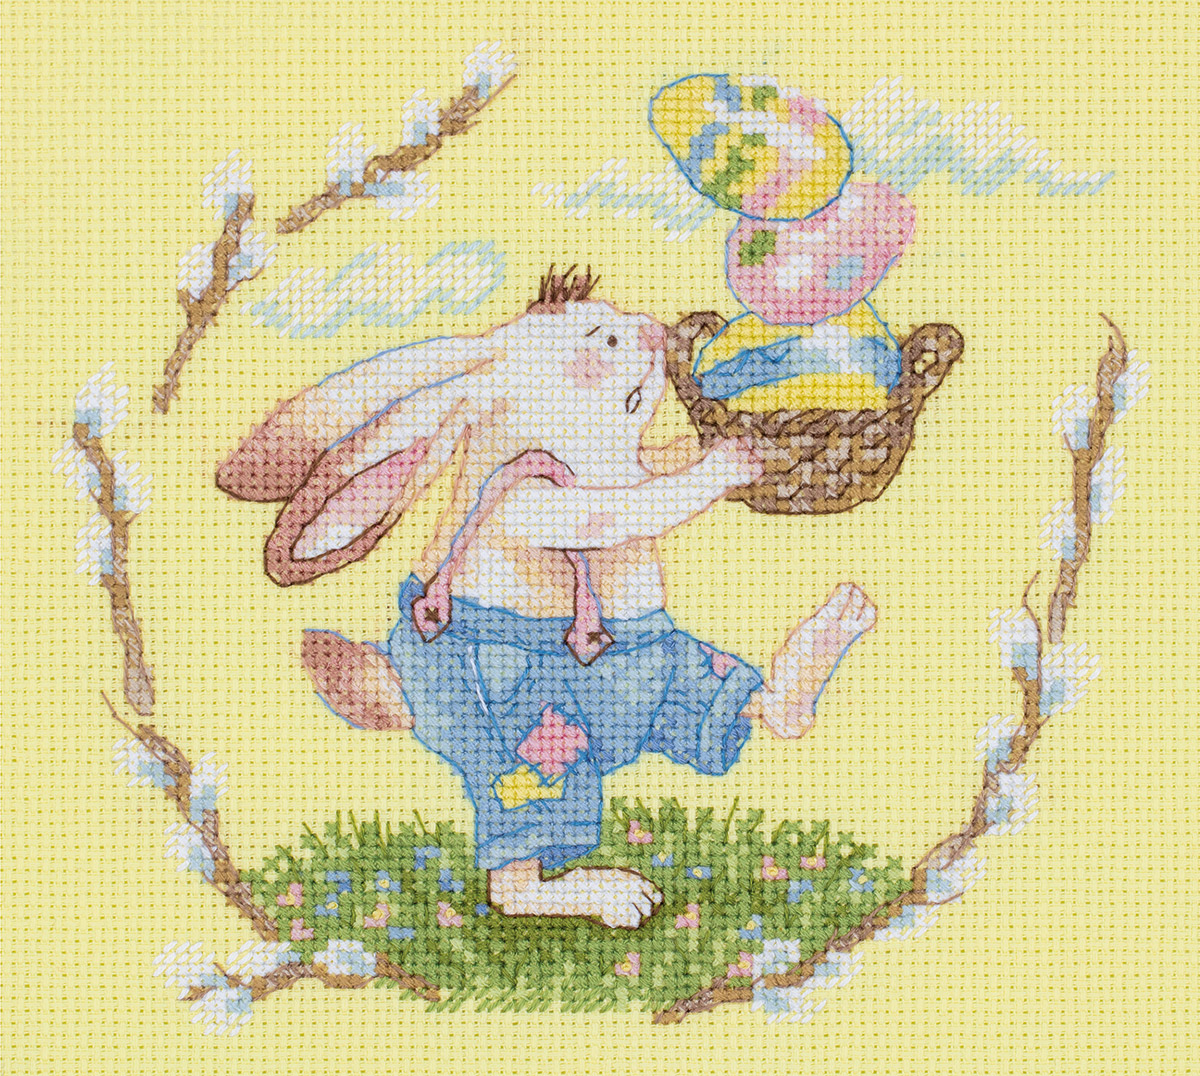 Embroidery kits PANNA 8-419 Easter Basket